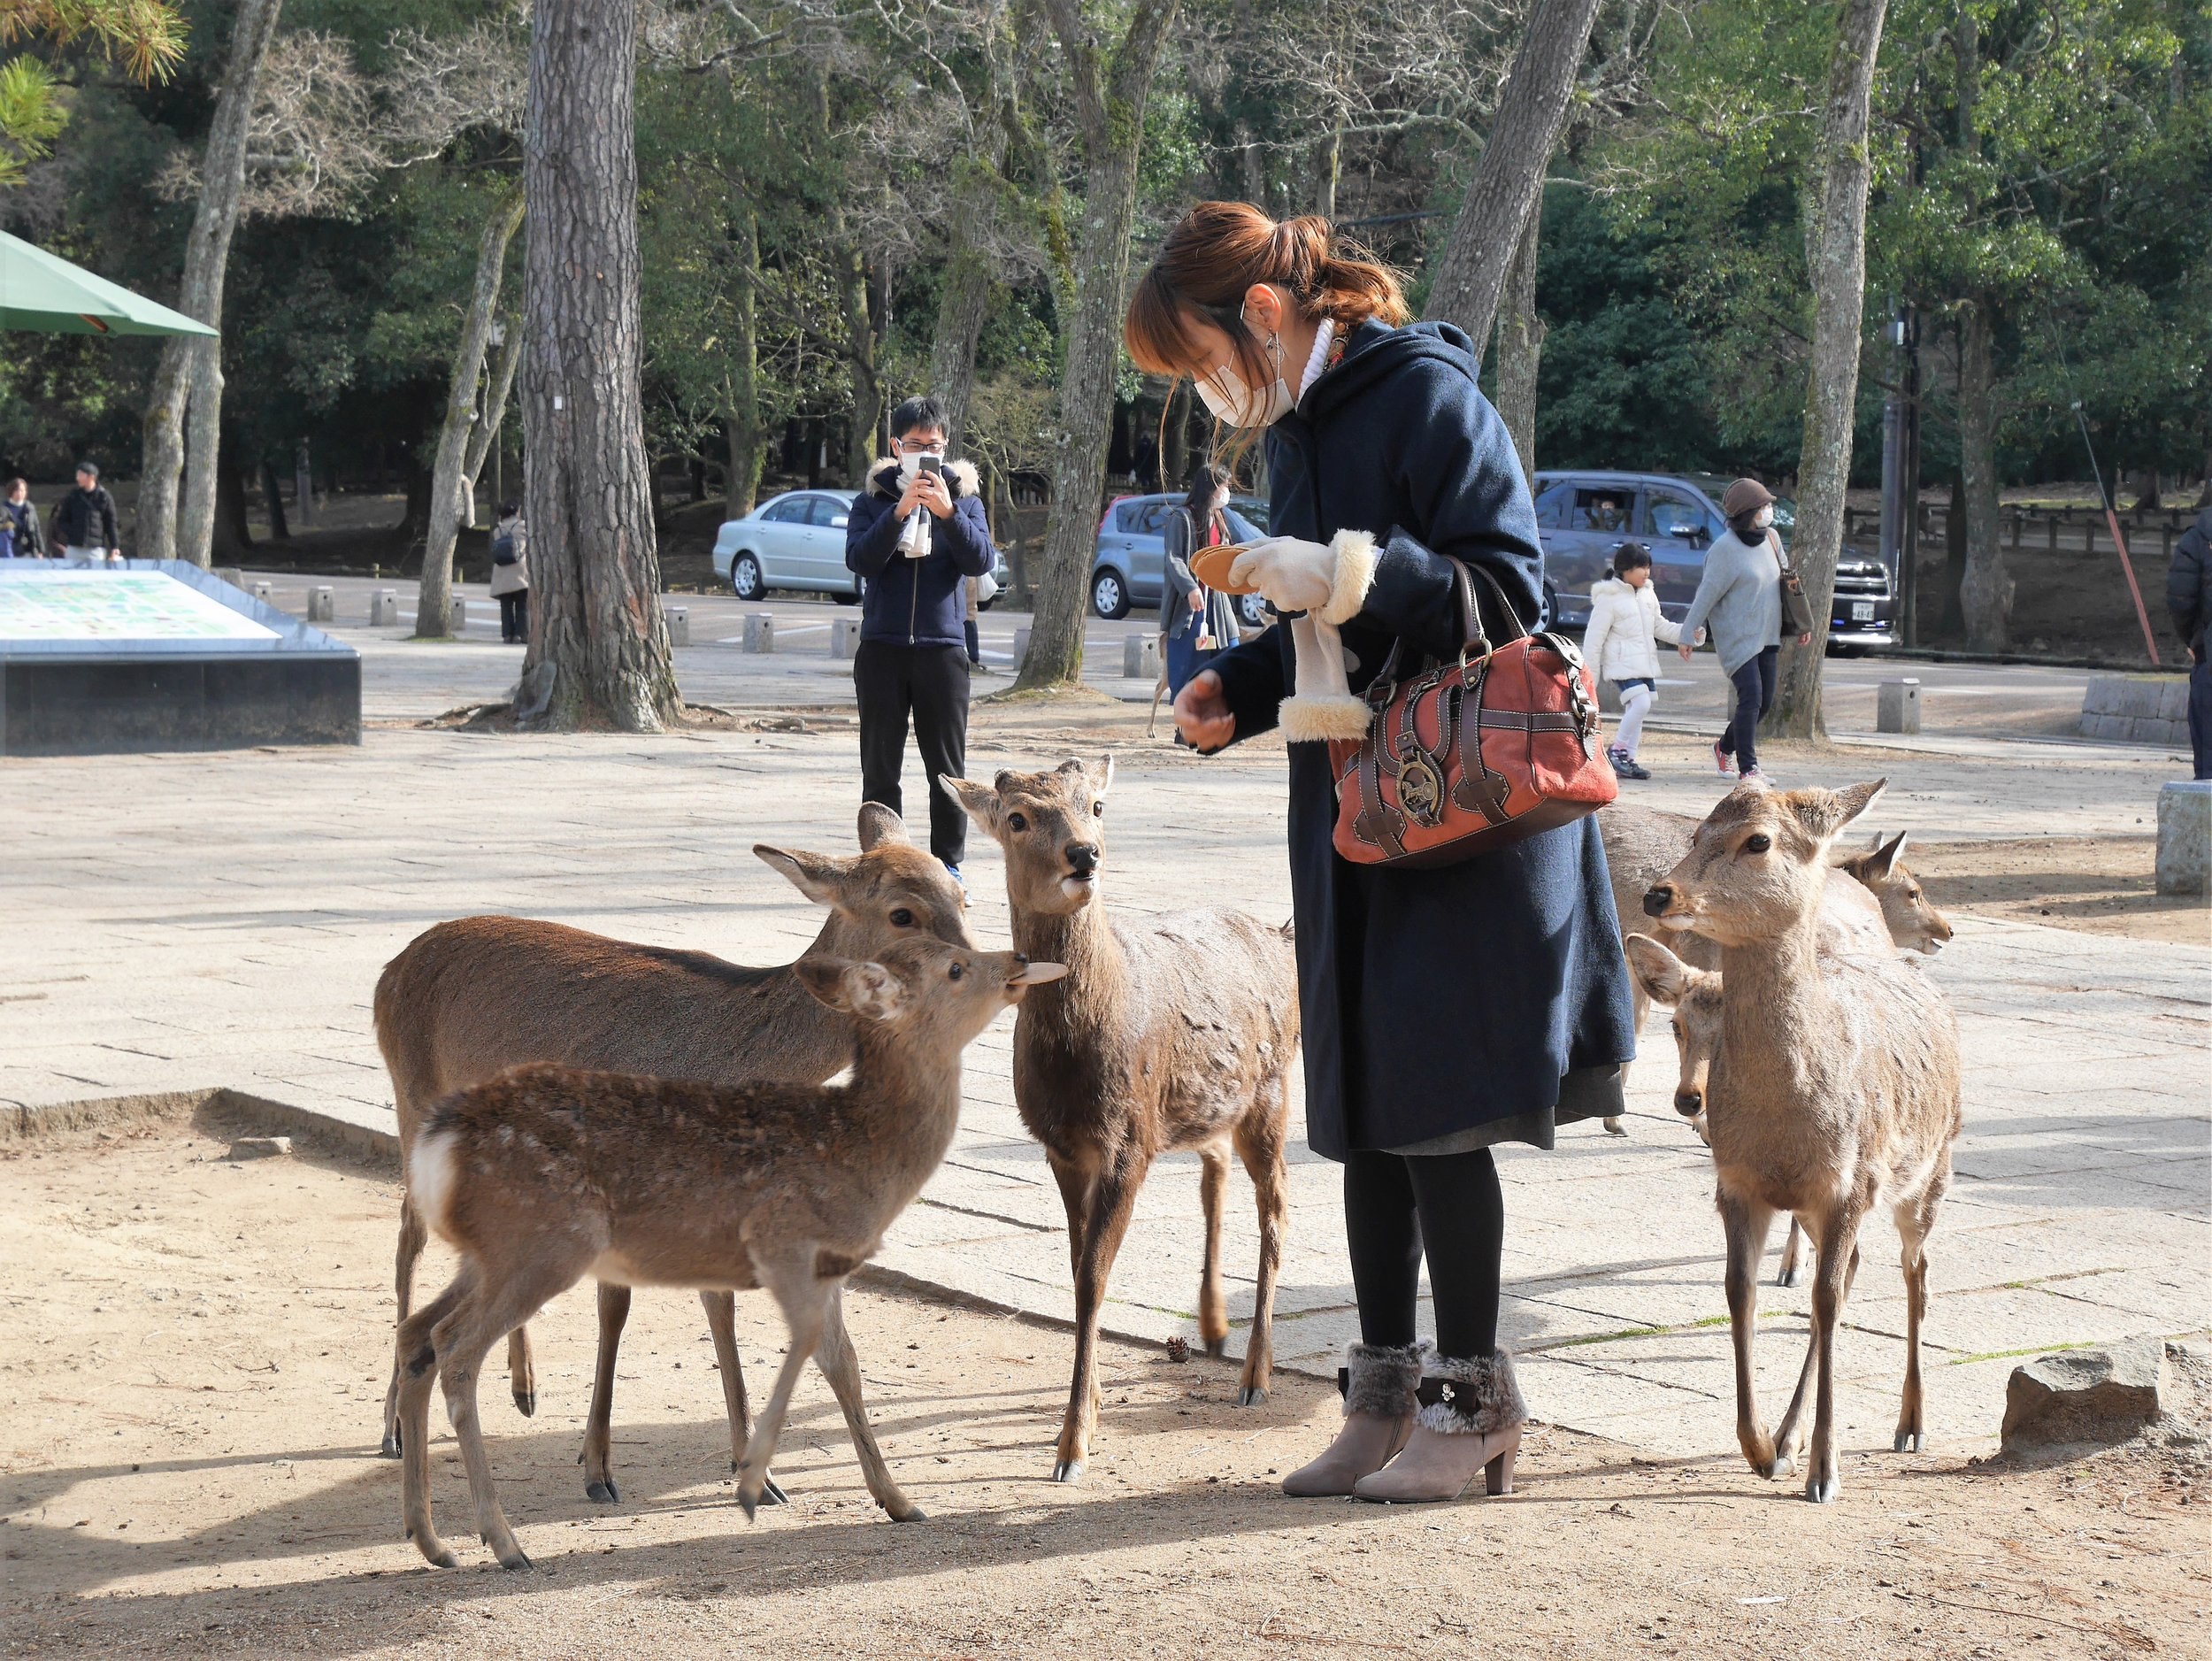 """Bowing deer. - The deer of Nara are plentiful and you'll find them wandering freely through all of the small city's parks. These deer are famously known as Japan's bowing deer, because they do exactly that. There is no evidential proof of how this behavior came to be, but it is assumed that initial deer learned to """"bow"""" in exchange for food from human hands, and since then young deer have learned this behaviour from their parents. We visited Nara by train from Osaka and in no time had found ourselves some bowing deer. We purchased a bit of deer food from a nearby shop, bowed to the creatures, and got many bows back! It is endlessly entertaining, and if you luck out like us you might encounter some locals who are expert deer whisperers."""